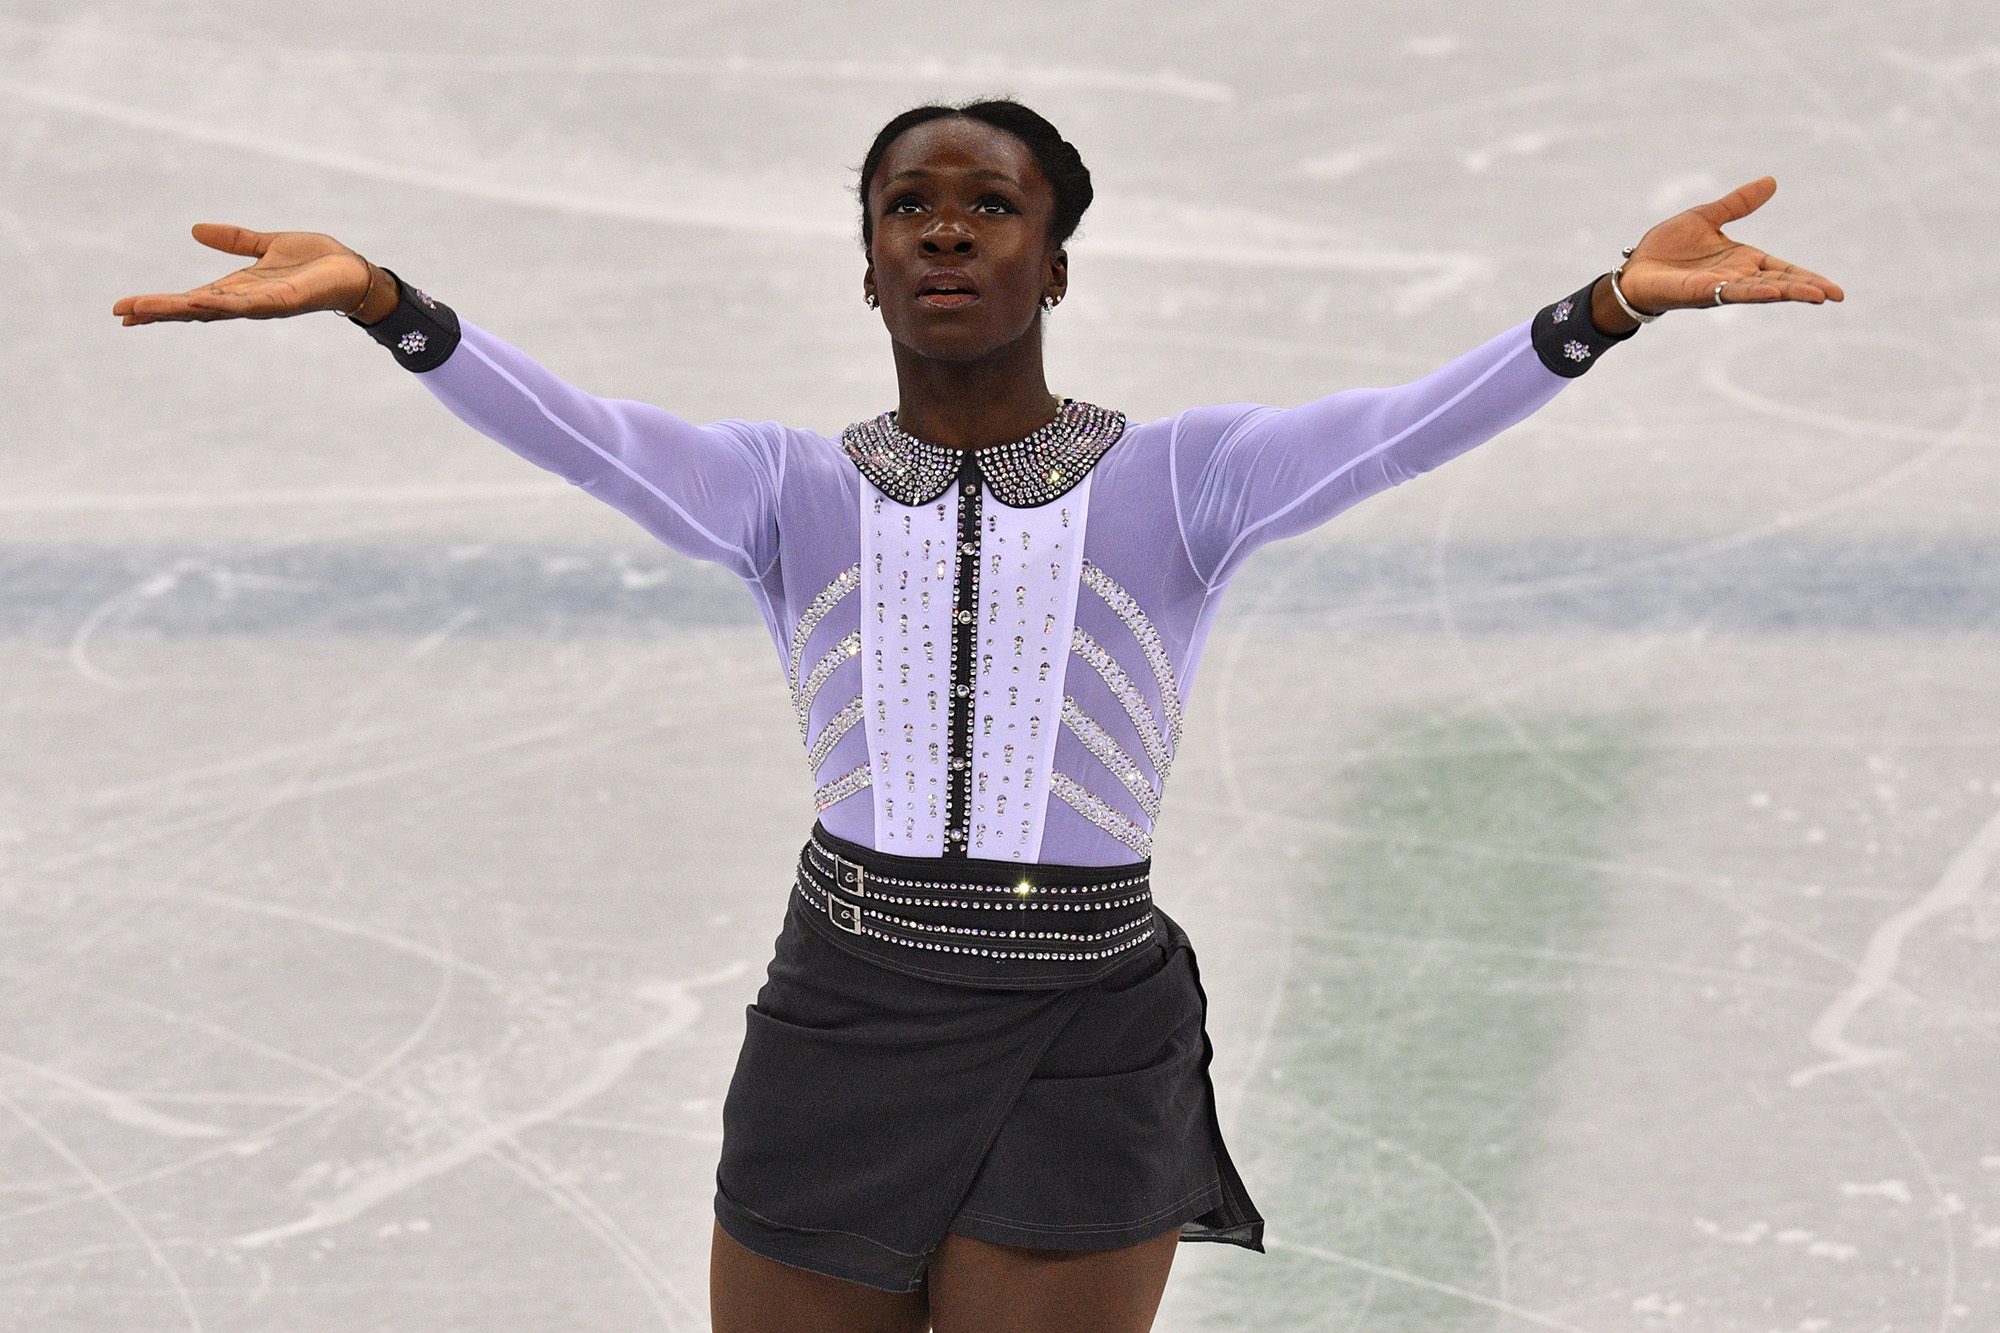 French Skater Lead